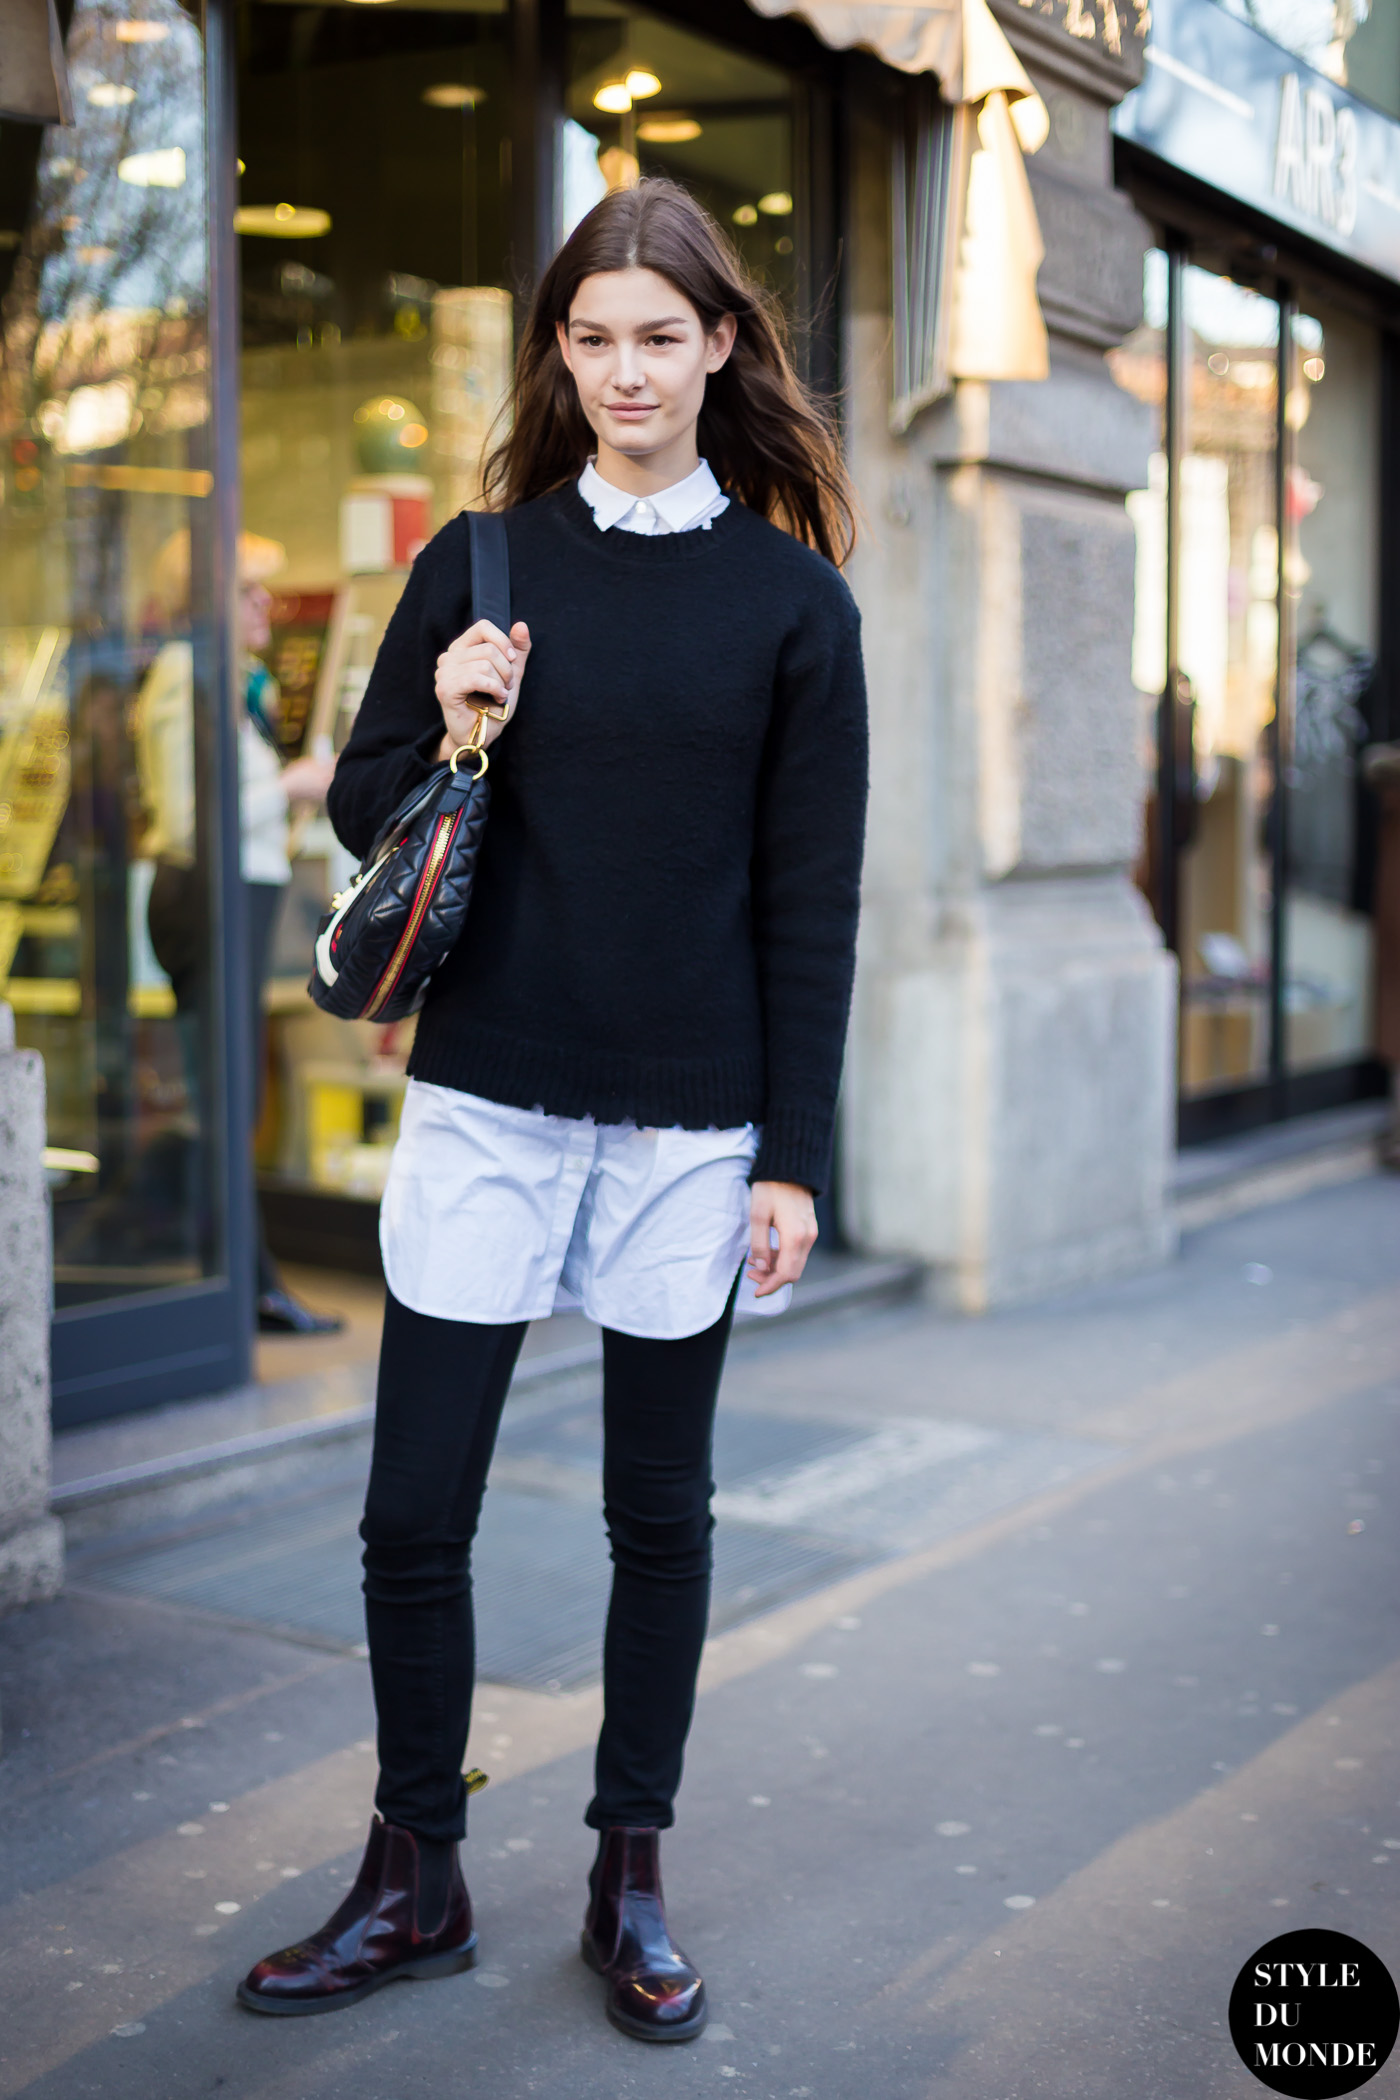 Ophelie Guillermand Street Style Street Fashion Streetsnaps by STYLEDUMONDE Street Style Fashion Blog